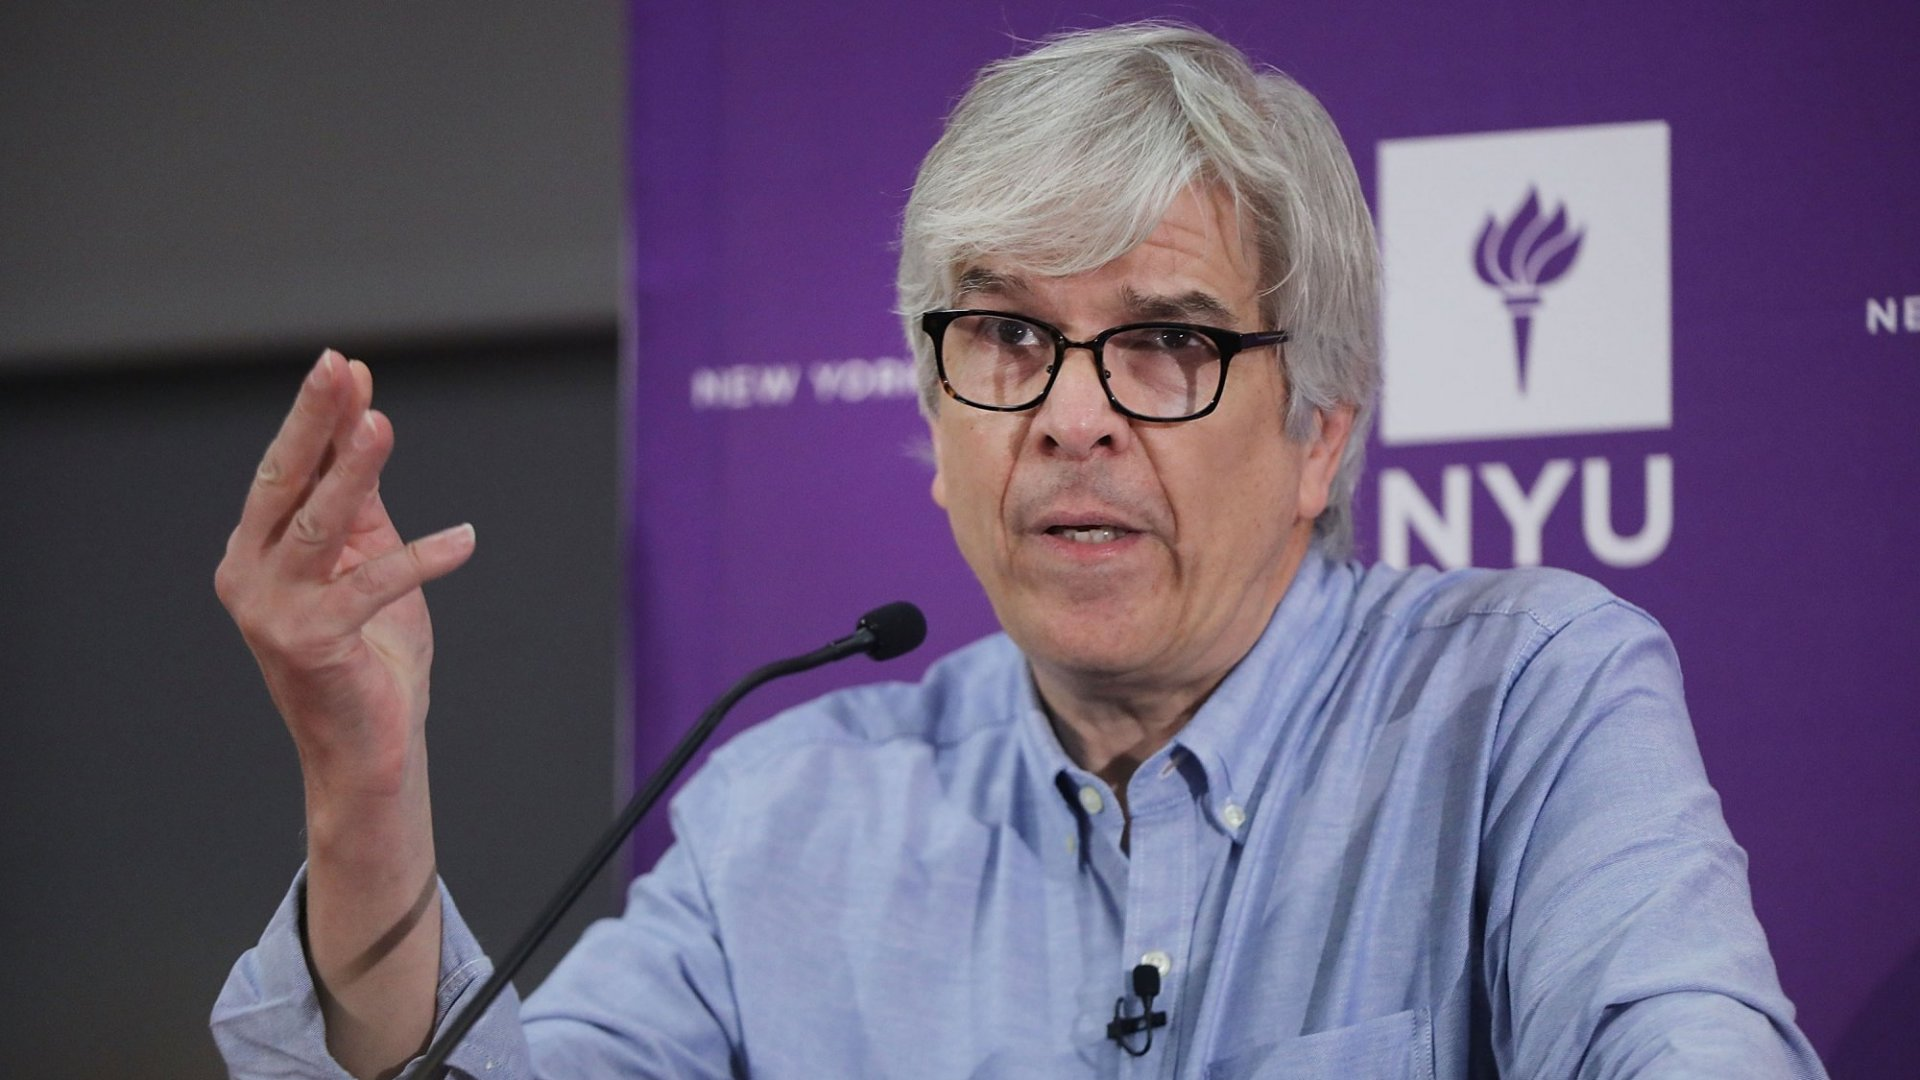 Paul Romer's Nobel Prize In Economics Marks A New Era Of Innovation Driven By Ideas